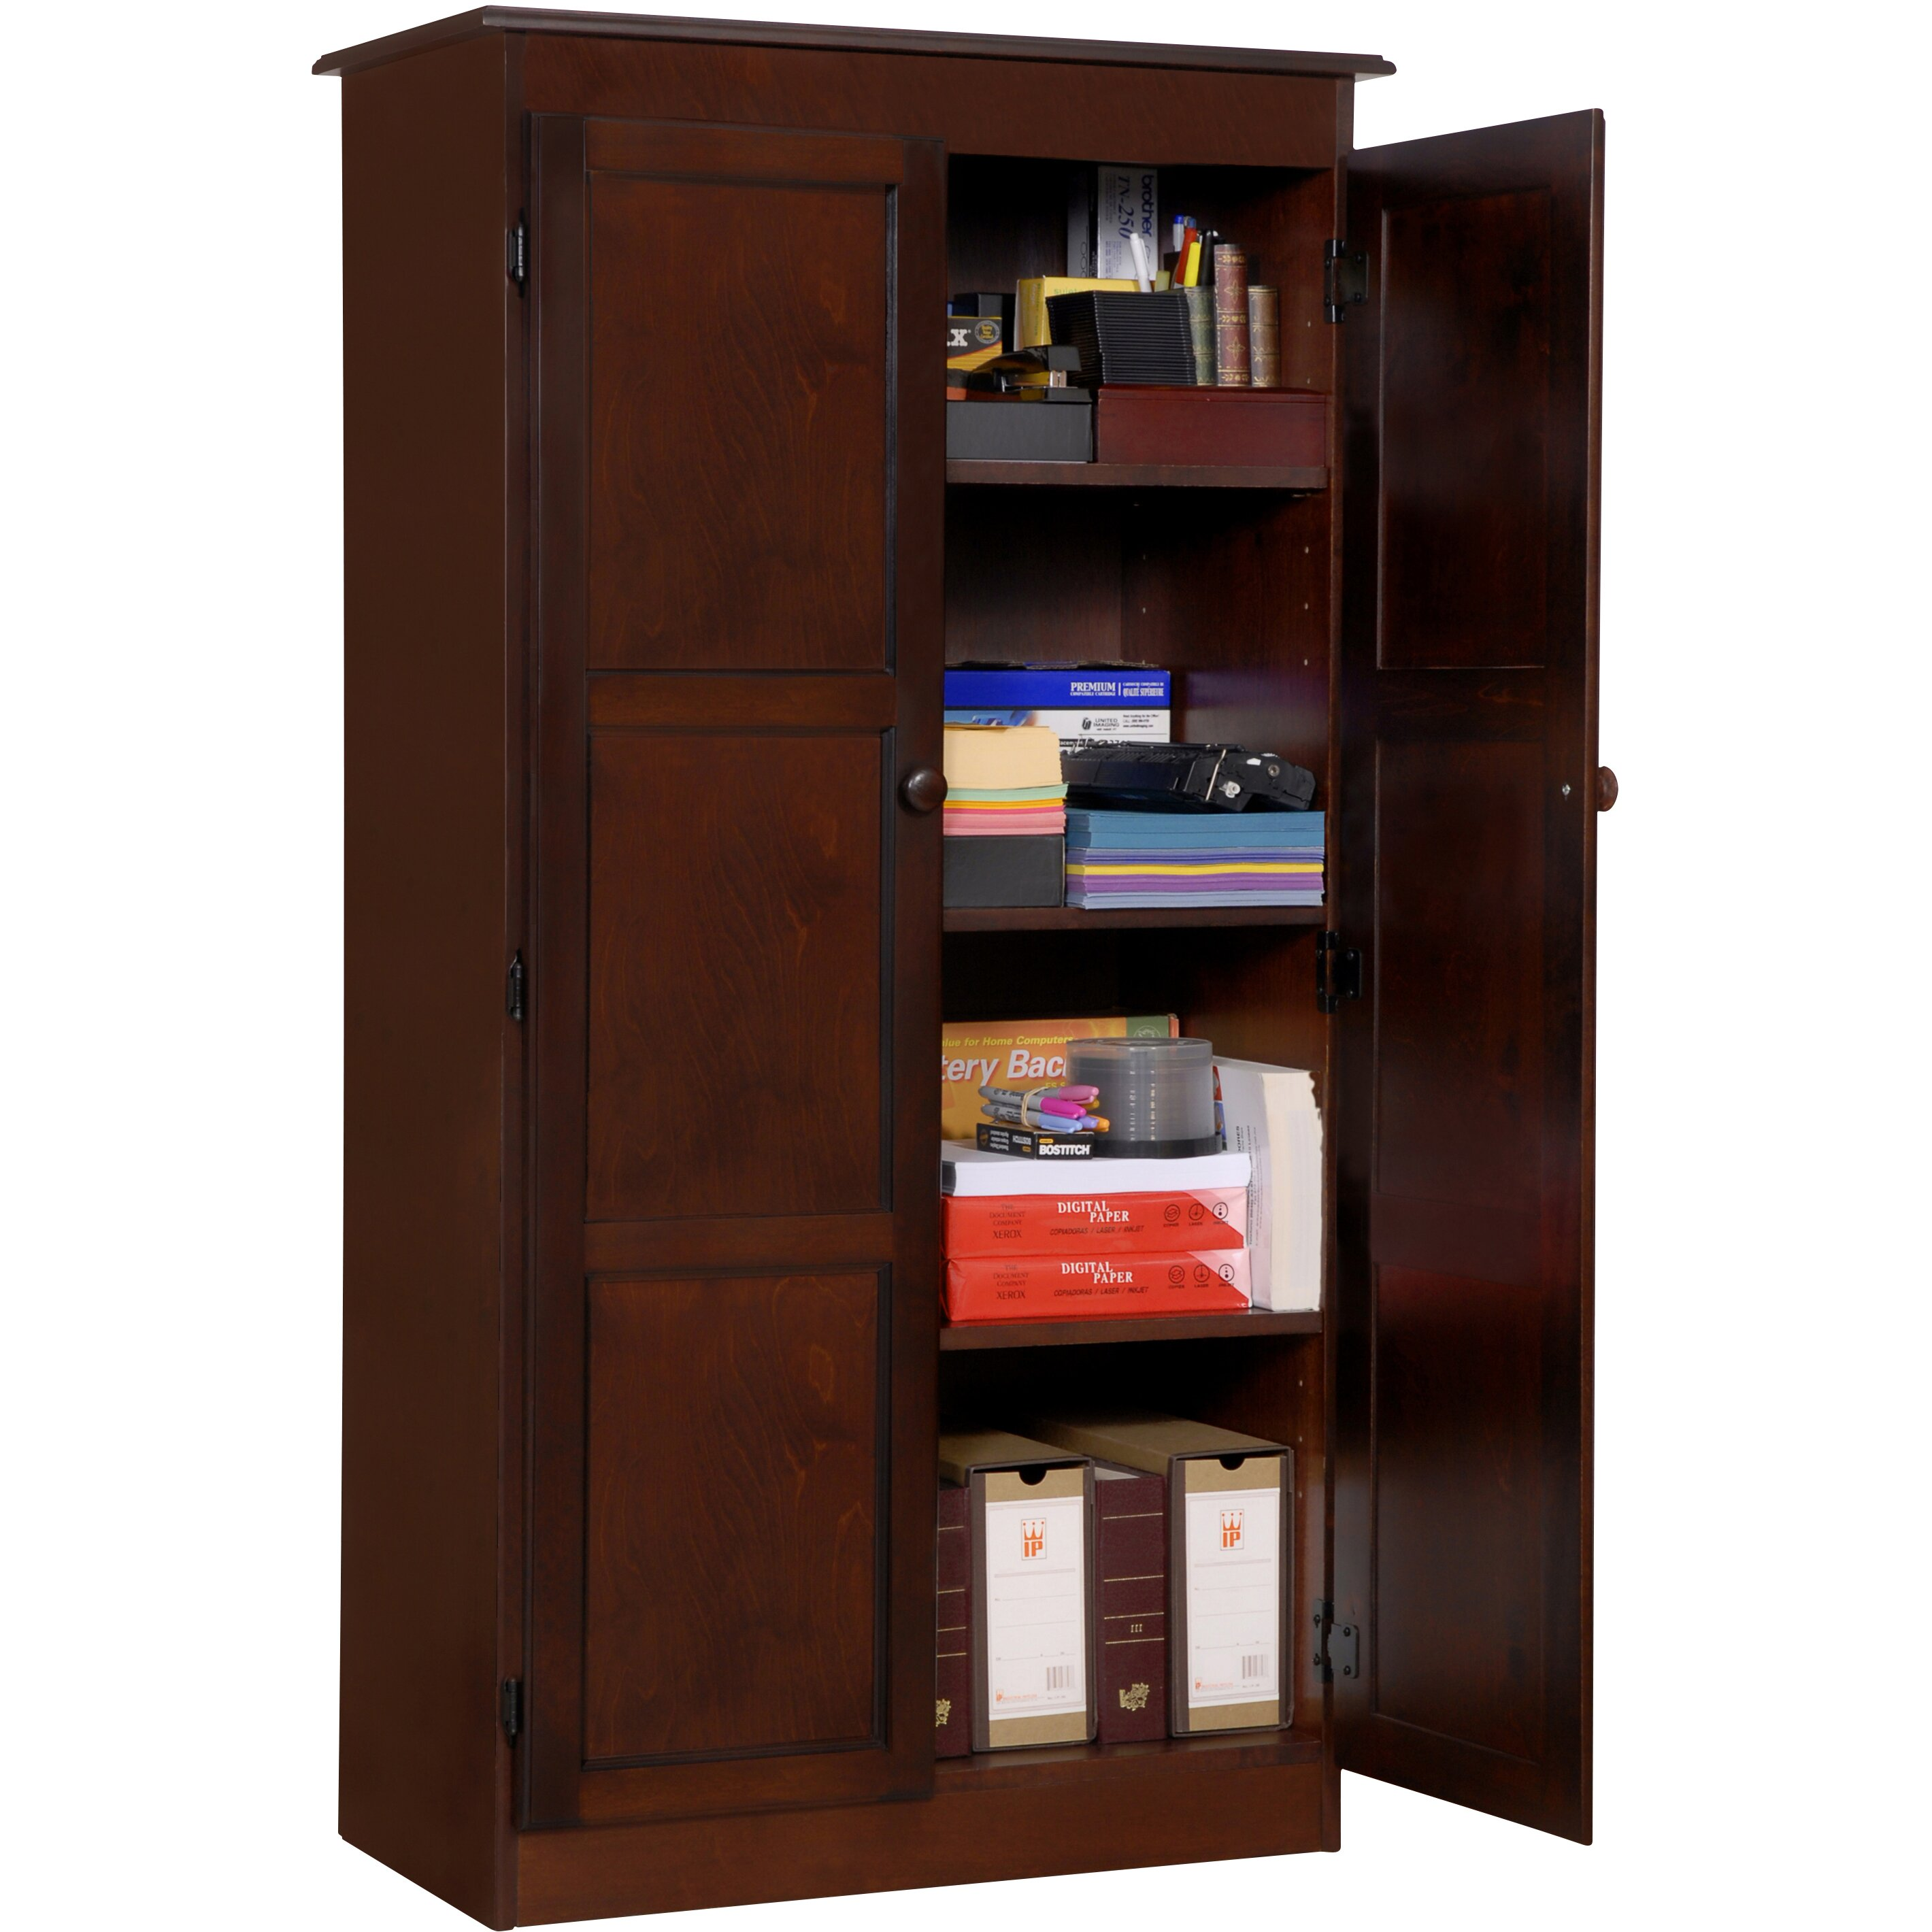 Cherry Wood Dvd Storage Cabinet Darby Home Co Fellers 2 Door Storage Cabinet Reviews Wayfair